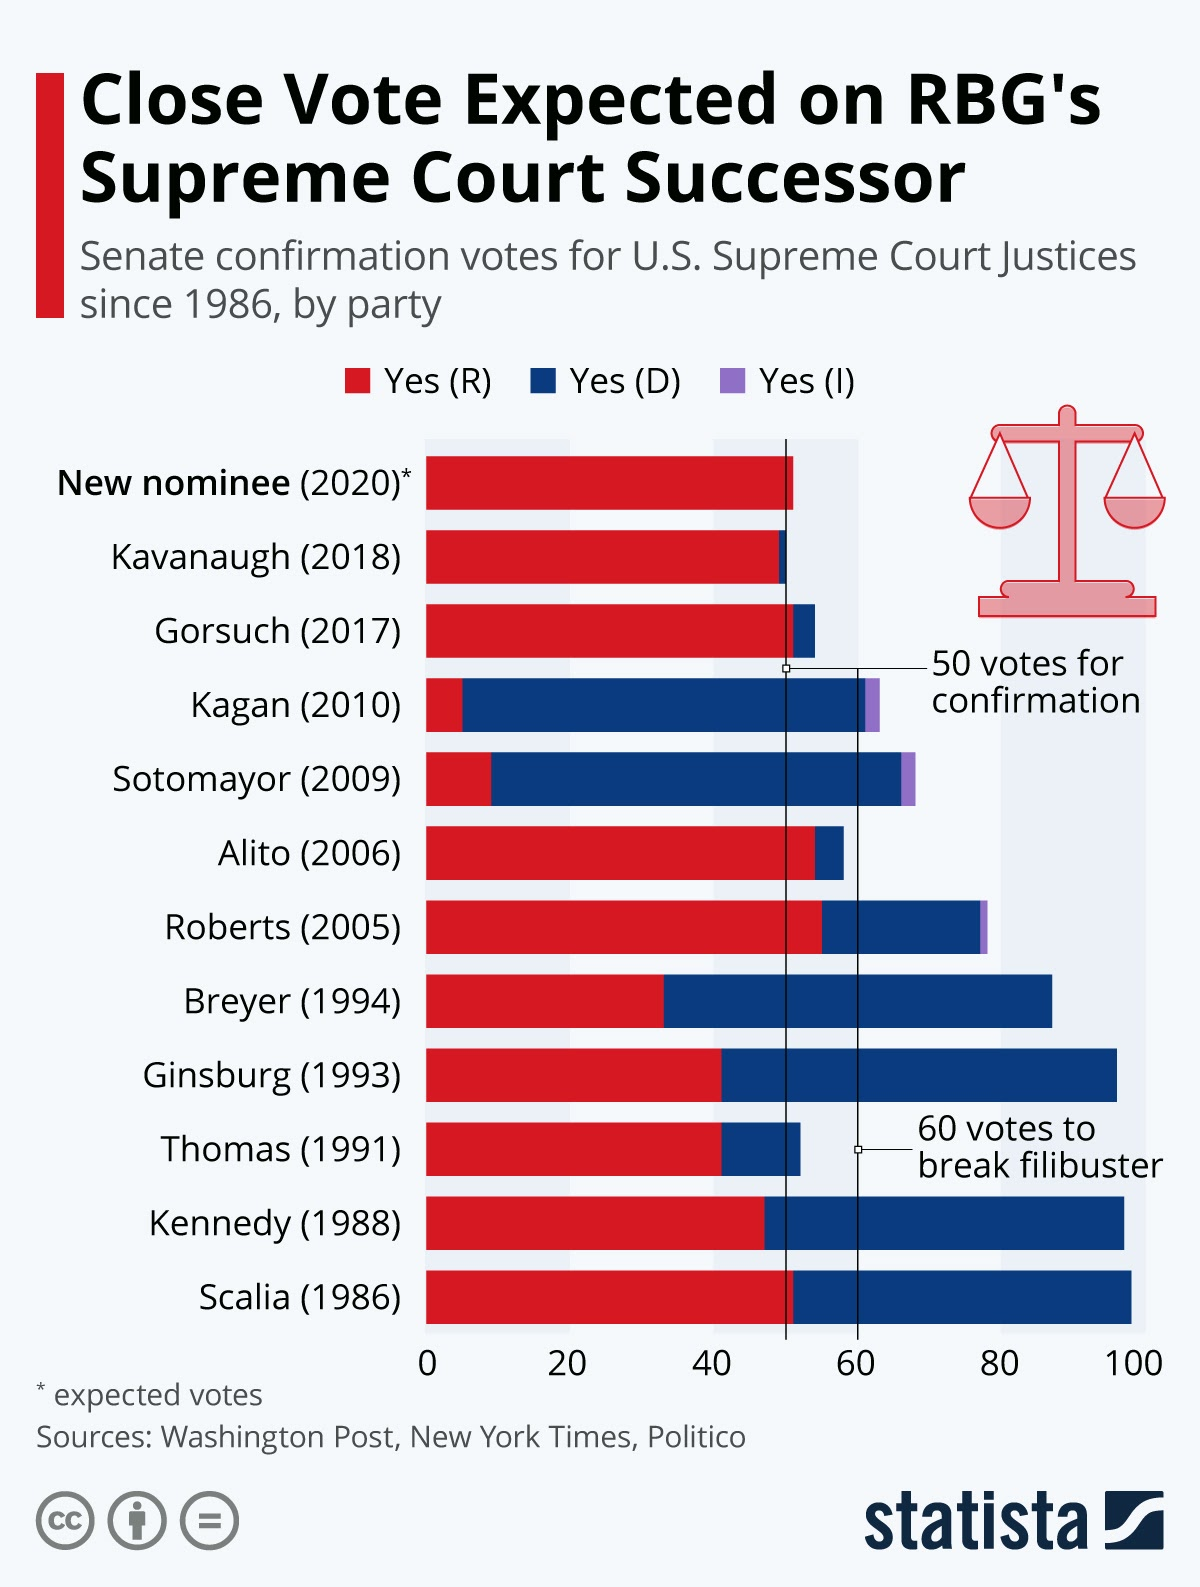 Close Vote Expected on RBG's Supreme Court Successor #infographic